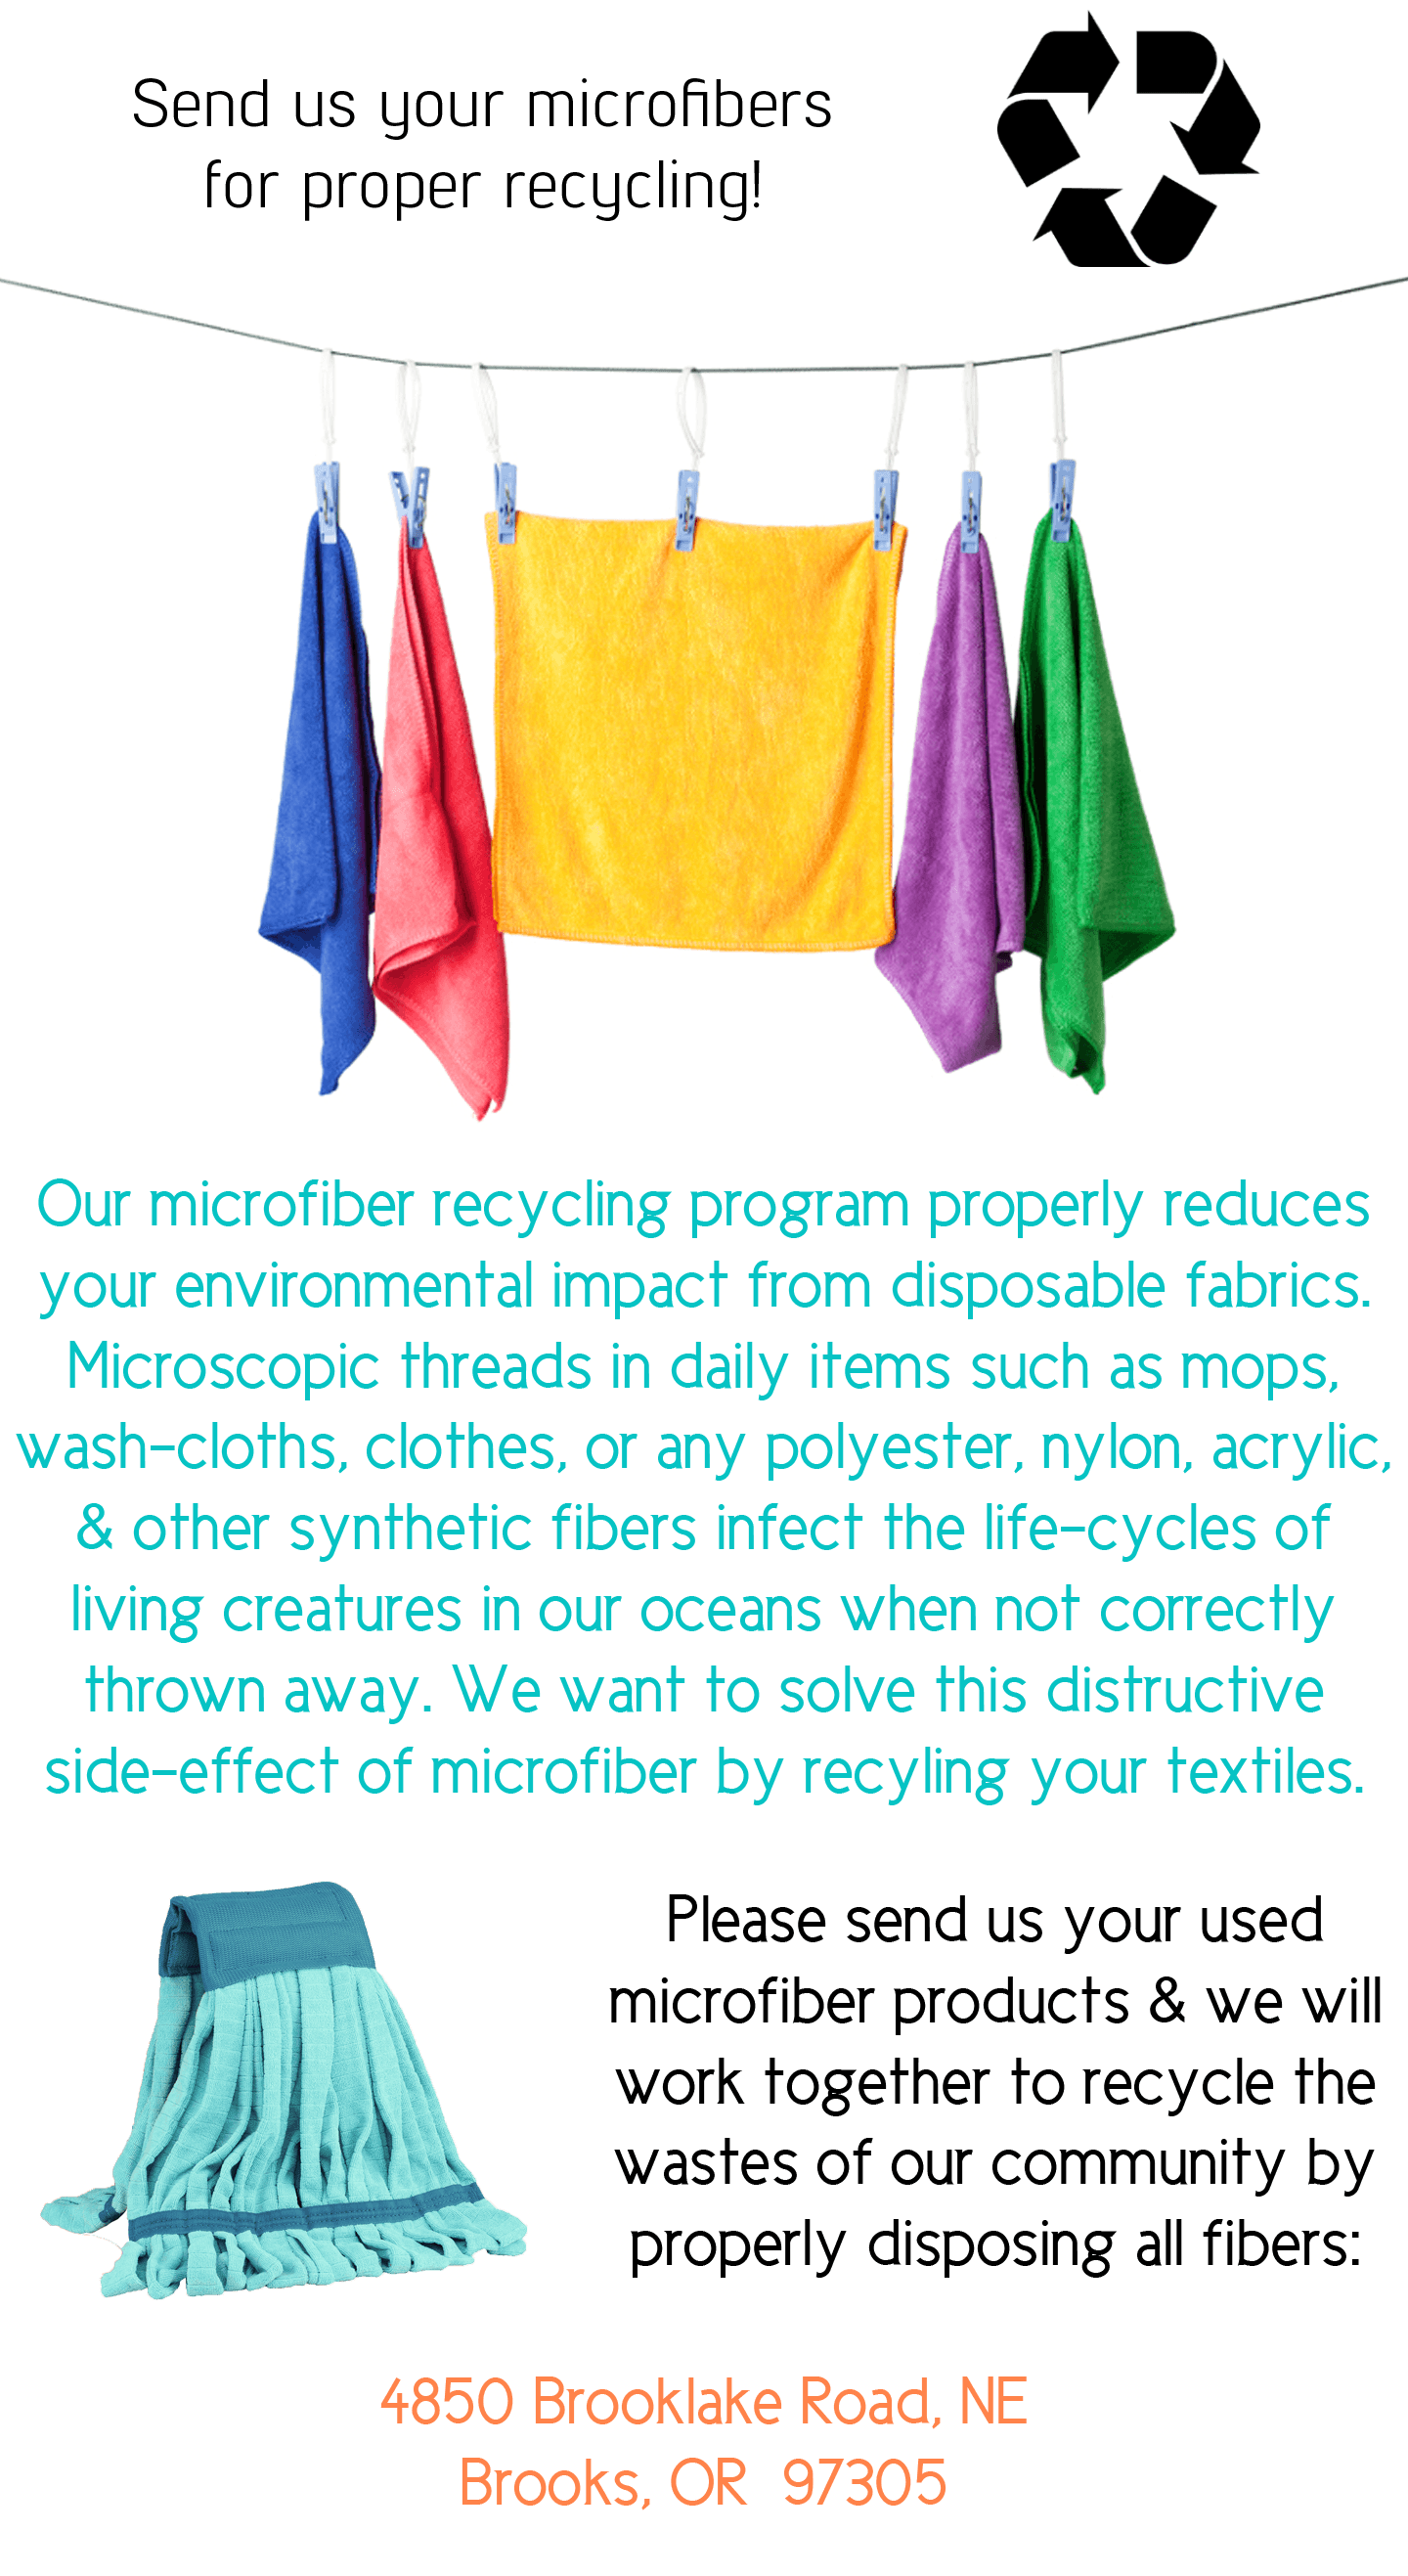 Send us your microfibers for proper recycling! Our microfiber recycling program properly reduces your environmental impact from disposable fabrics. Microscopic threads in daily items such as mops, wash-cloths, clothes, or any polyester, nylon, acrylic, and other synthetic fibers infect the life-cycles of living creatures in our oceans when not correctly thrown away. We want to solve the distructive side-effect of microfiber by recycling your textiles. Please send ys your used microfiber products and we will work together to recycle the wastes of our community by properly disposing all fibers:  4850 Brooklake Road, NE Brooks, OR  97305